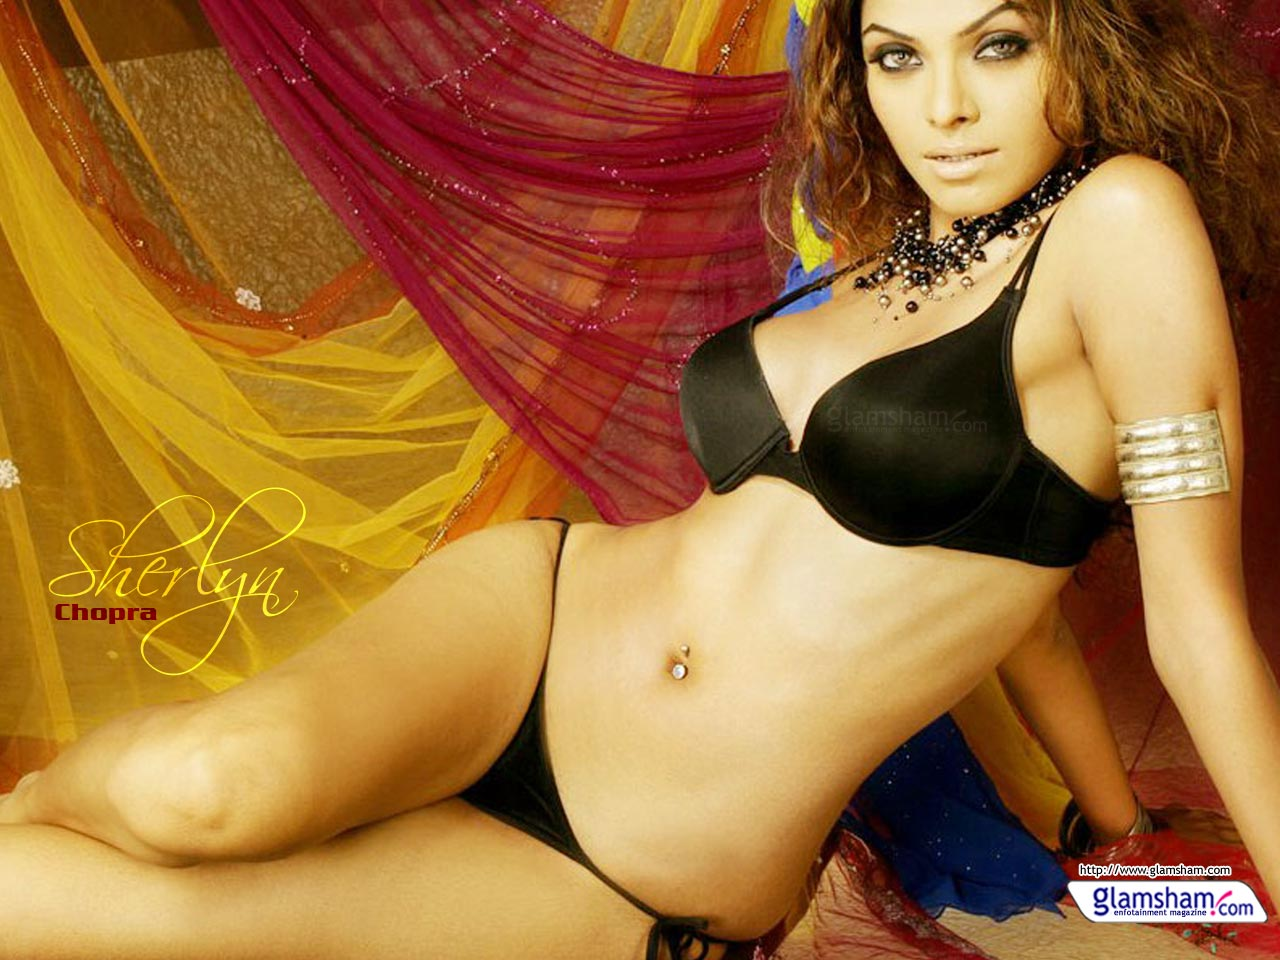 sherlyn chopra43 12x9 ... Rivers who recently did a very fun service scene with Jake Cruise.